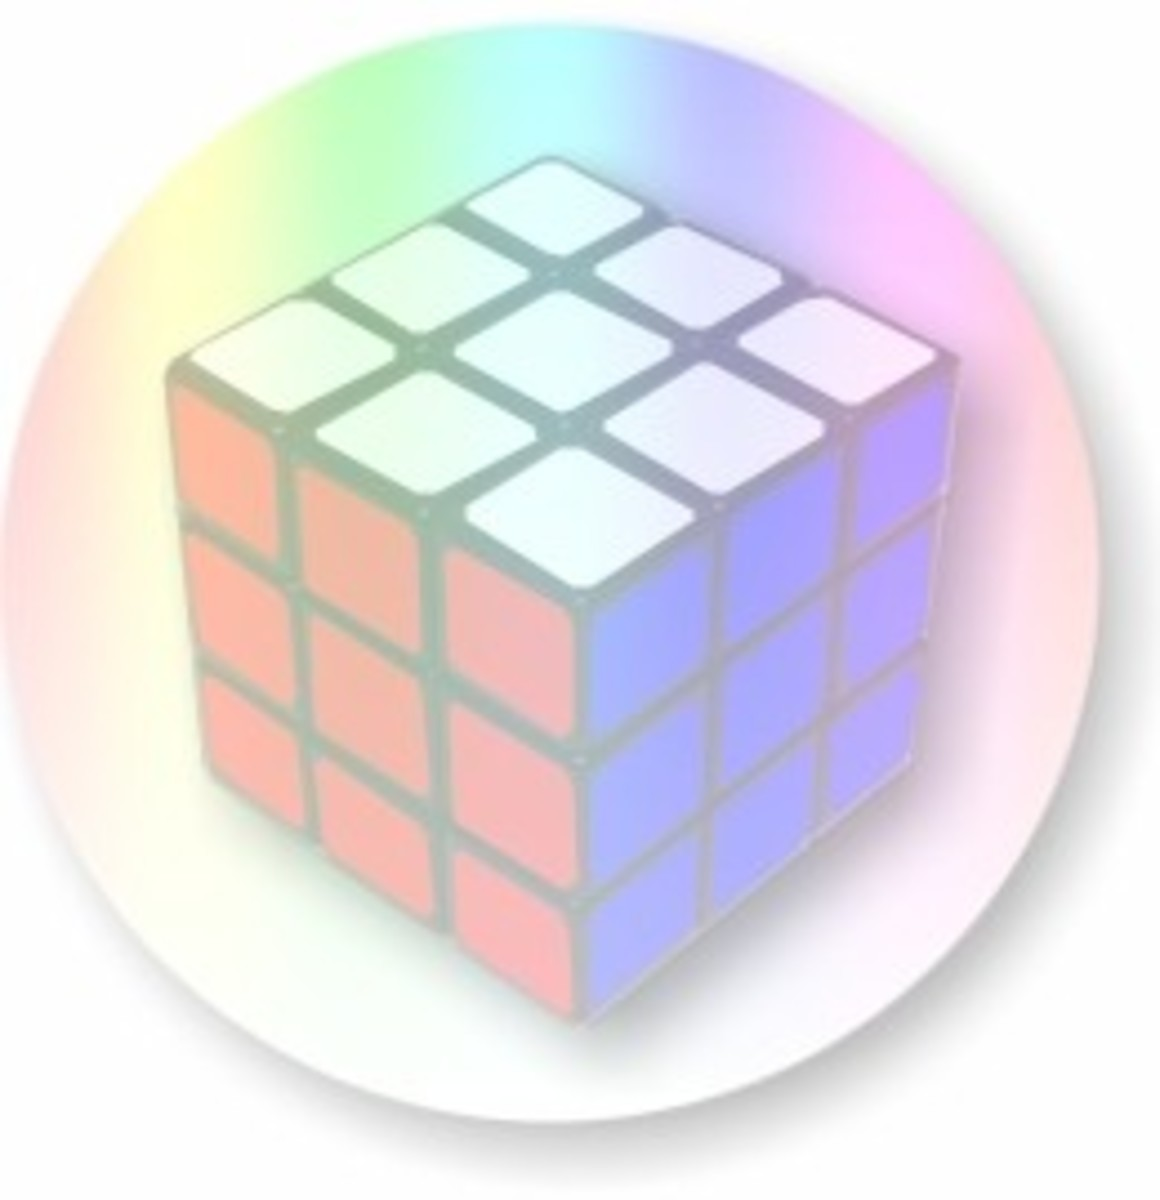 How To Solve A 3x3x3 Rubiks Cube - Standard Cube - 3x3 Rubik's Cube